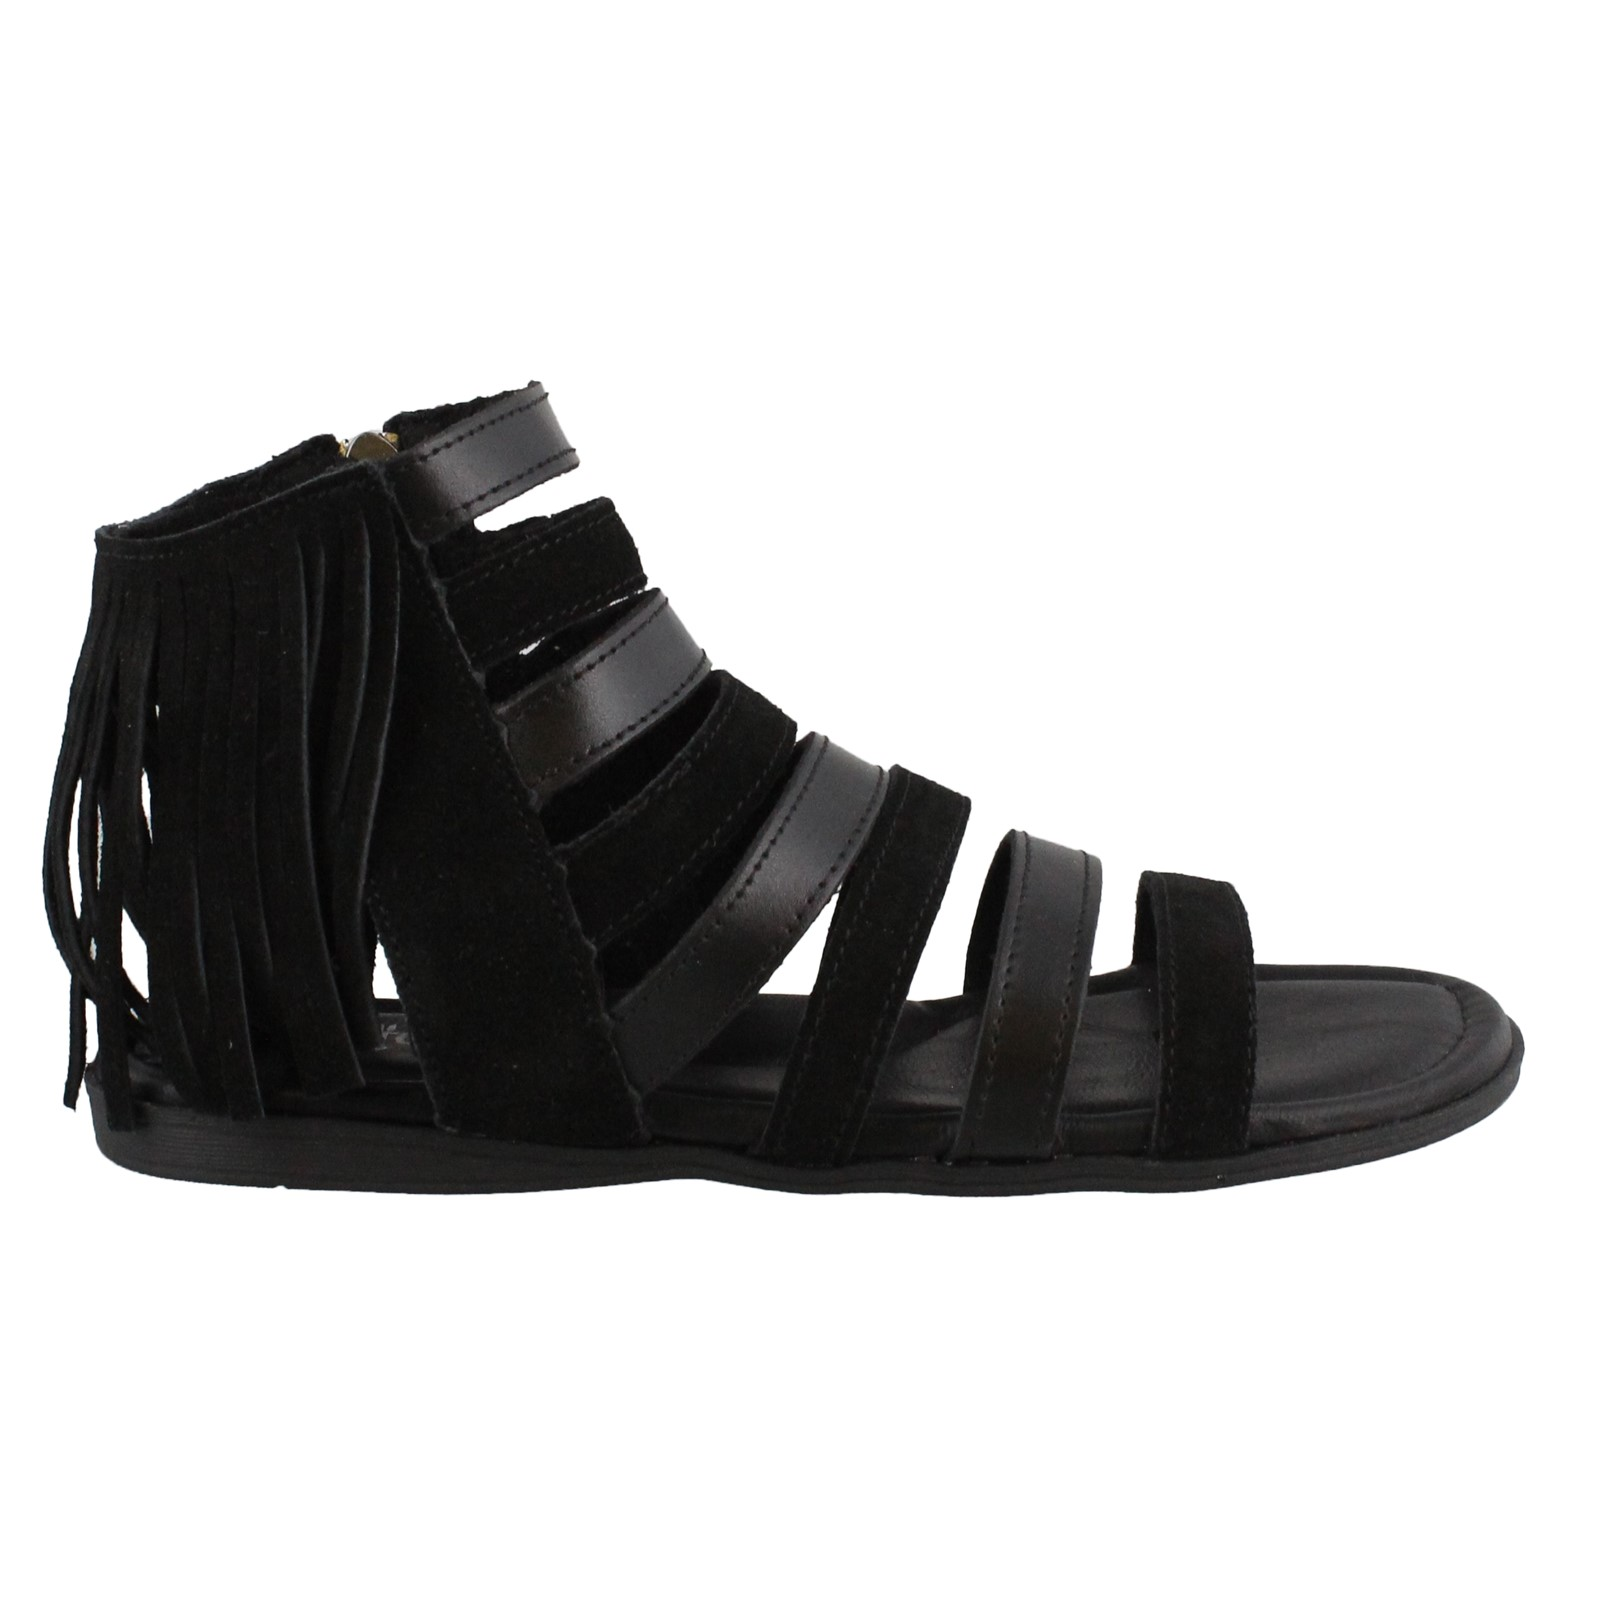 Women's Minnetonka, Pisa Gladiator Sandals